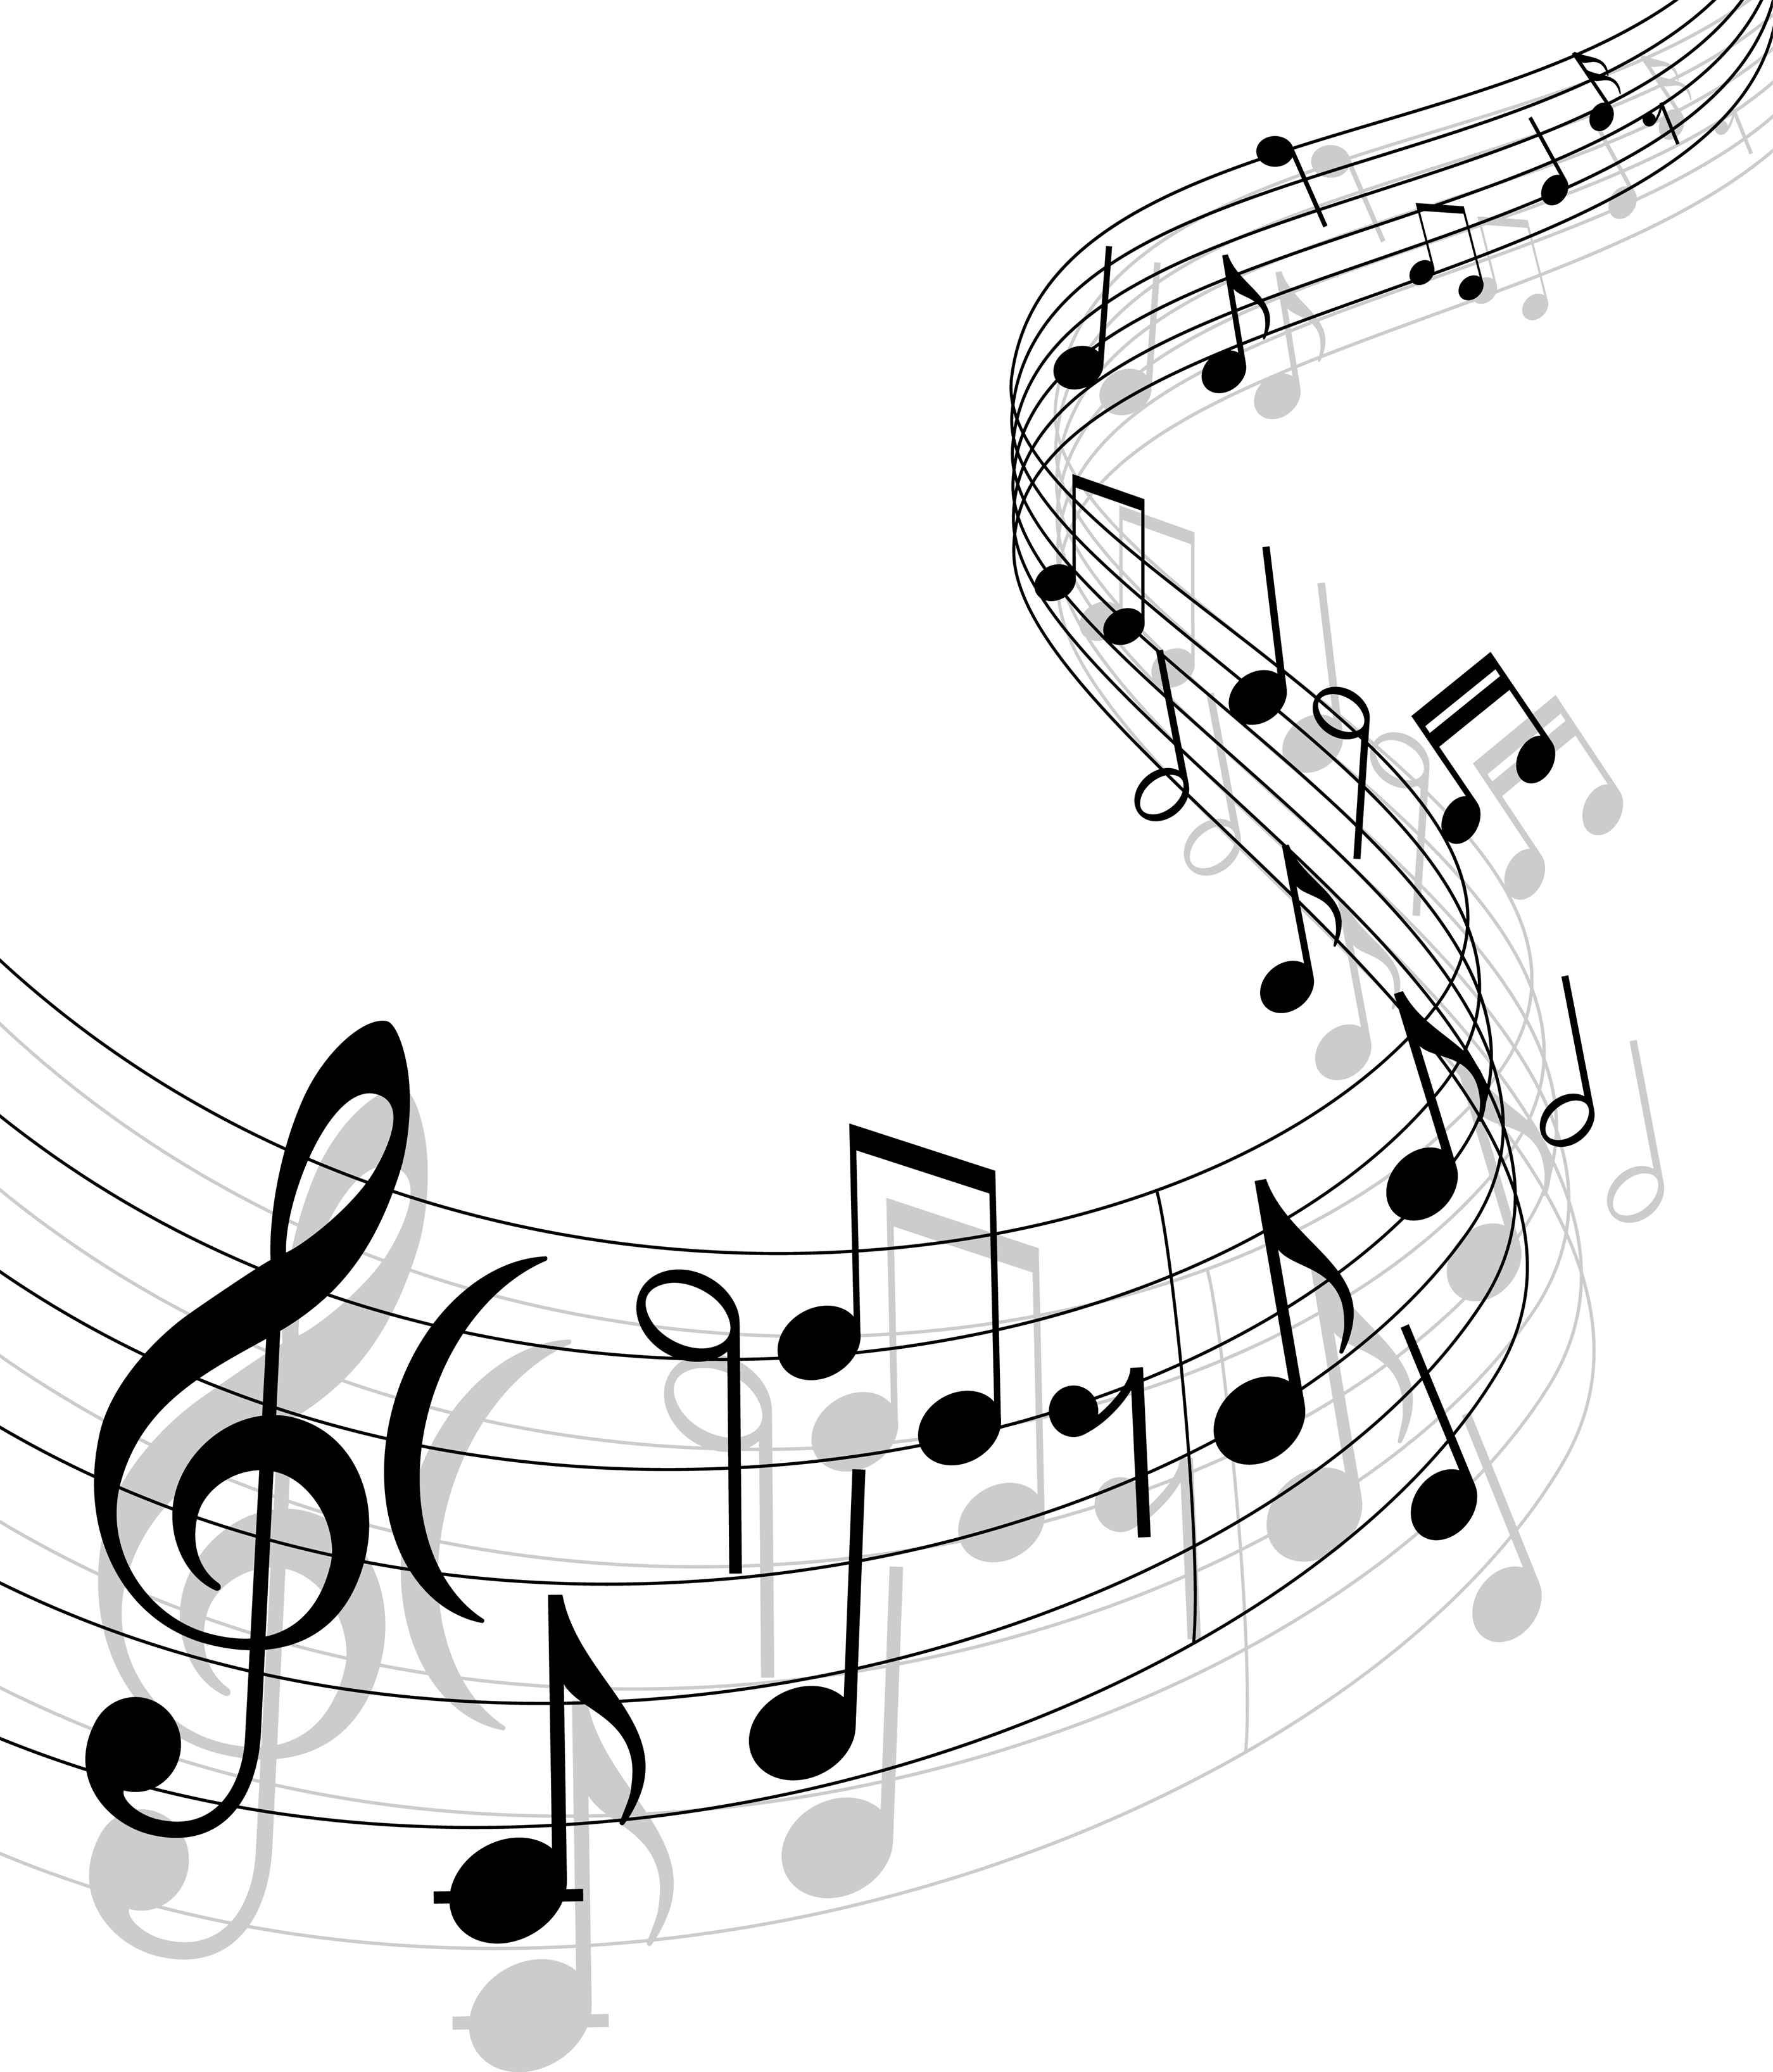 music note gospel musical notes clipart music pinterest music rh pinterest com gospel clip art for bulletins gospel clip art for bulletins